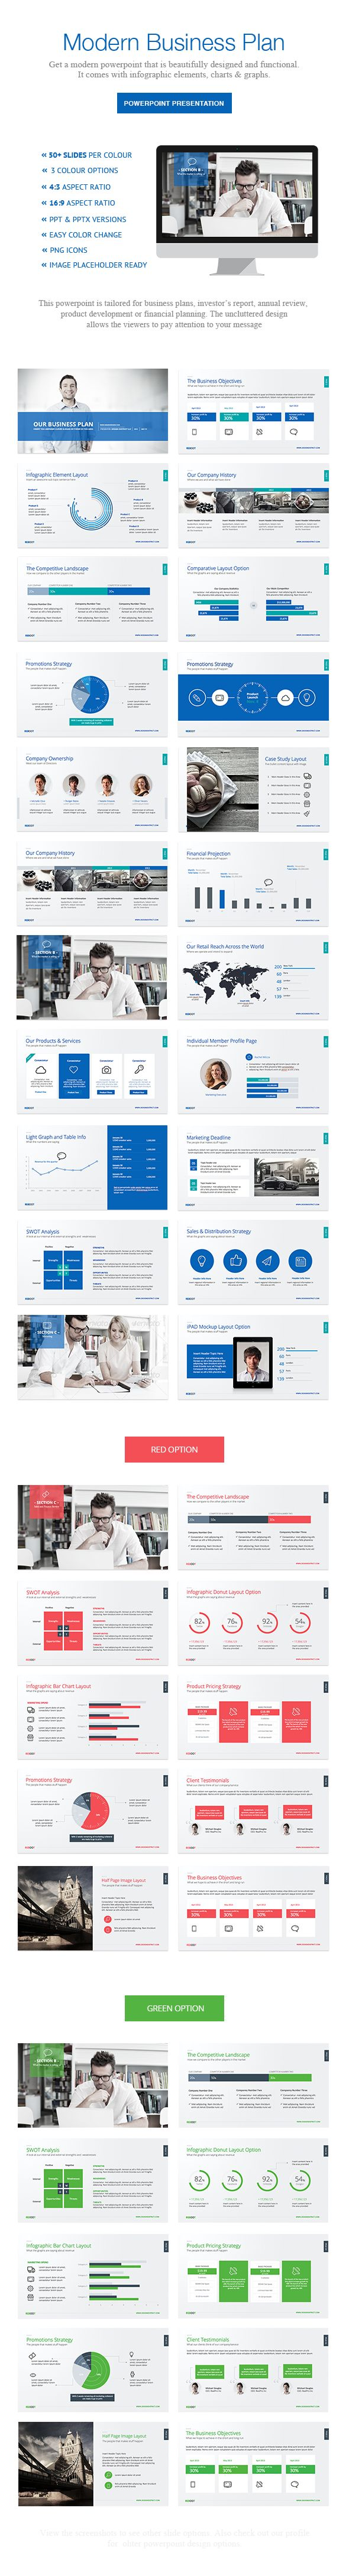 This Modern Business Plan Powerpoint is perfect for start up and…